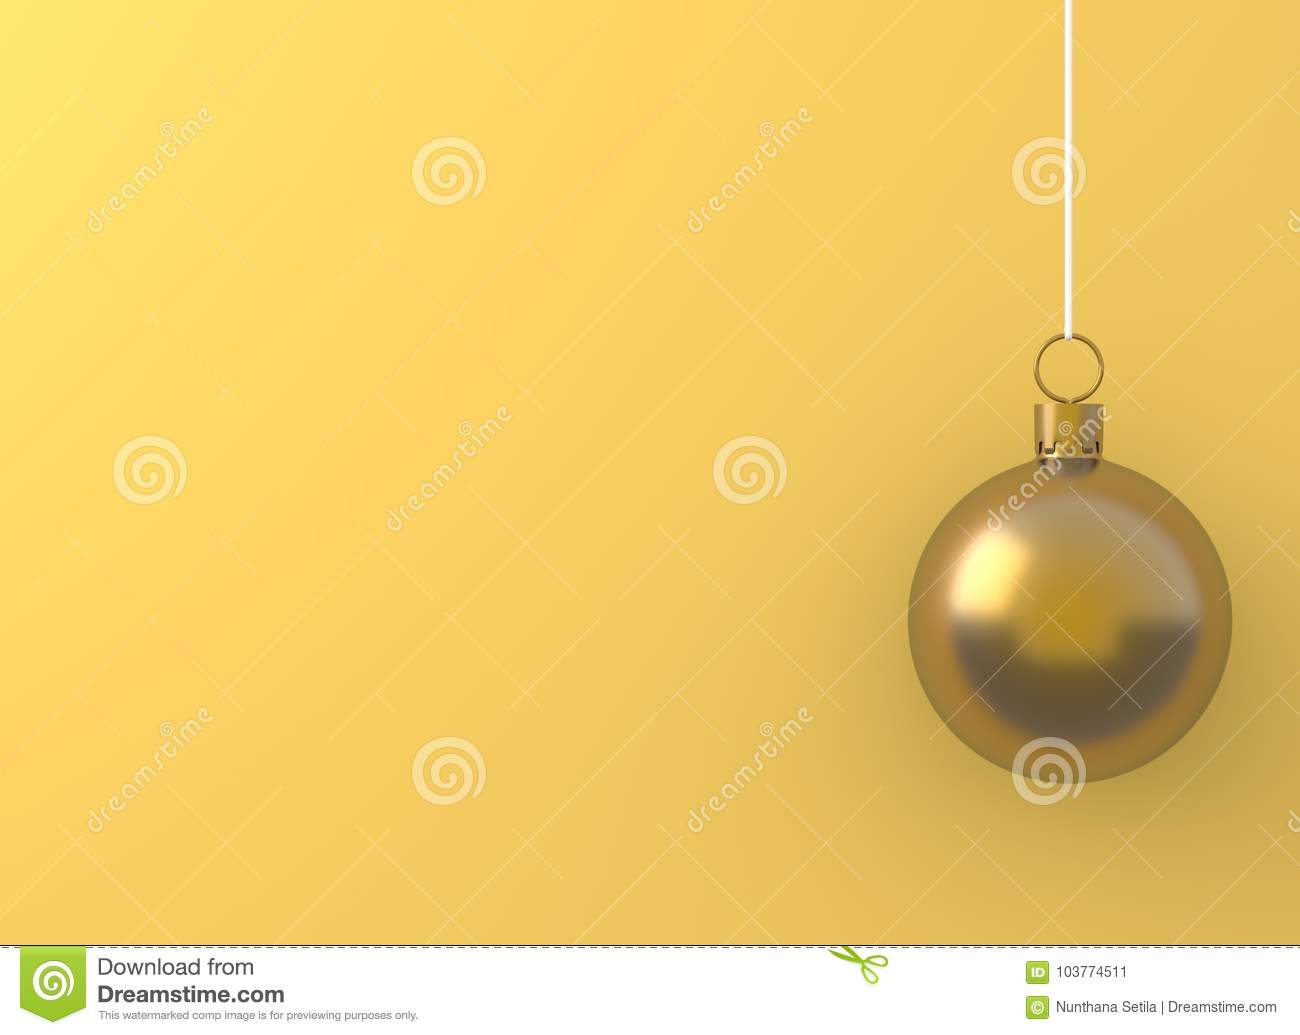 christmas ball gold ornament hanging on yellow background holiday concept new year minimal